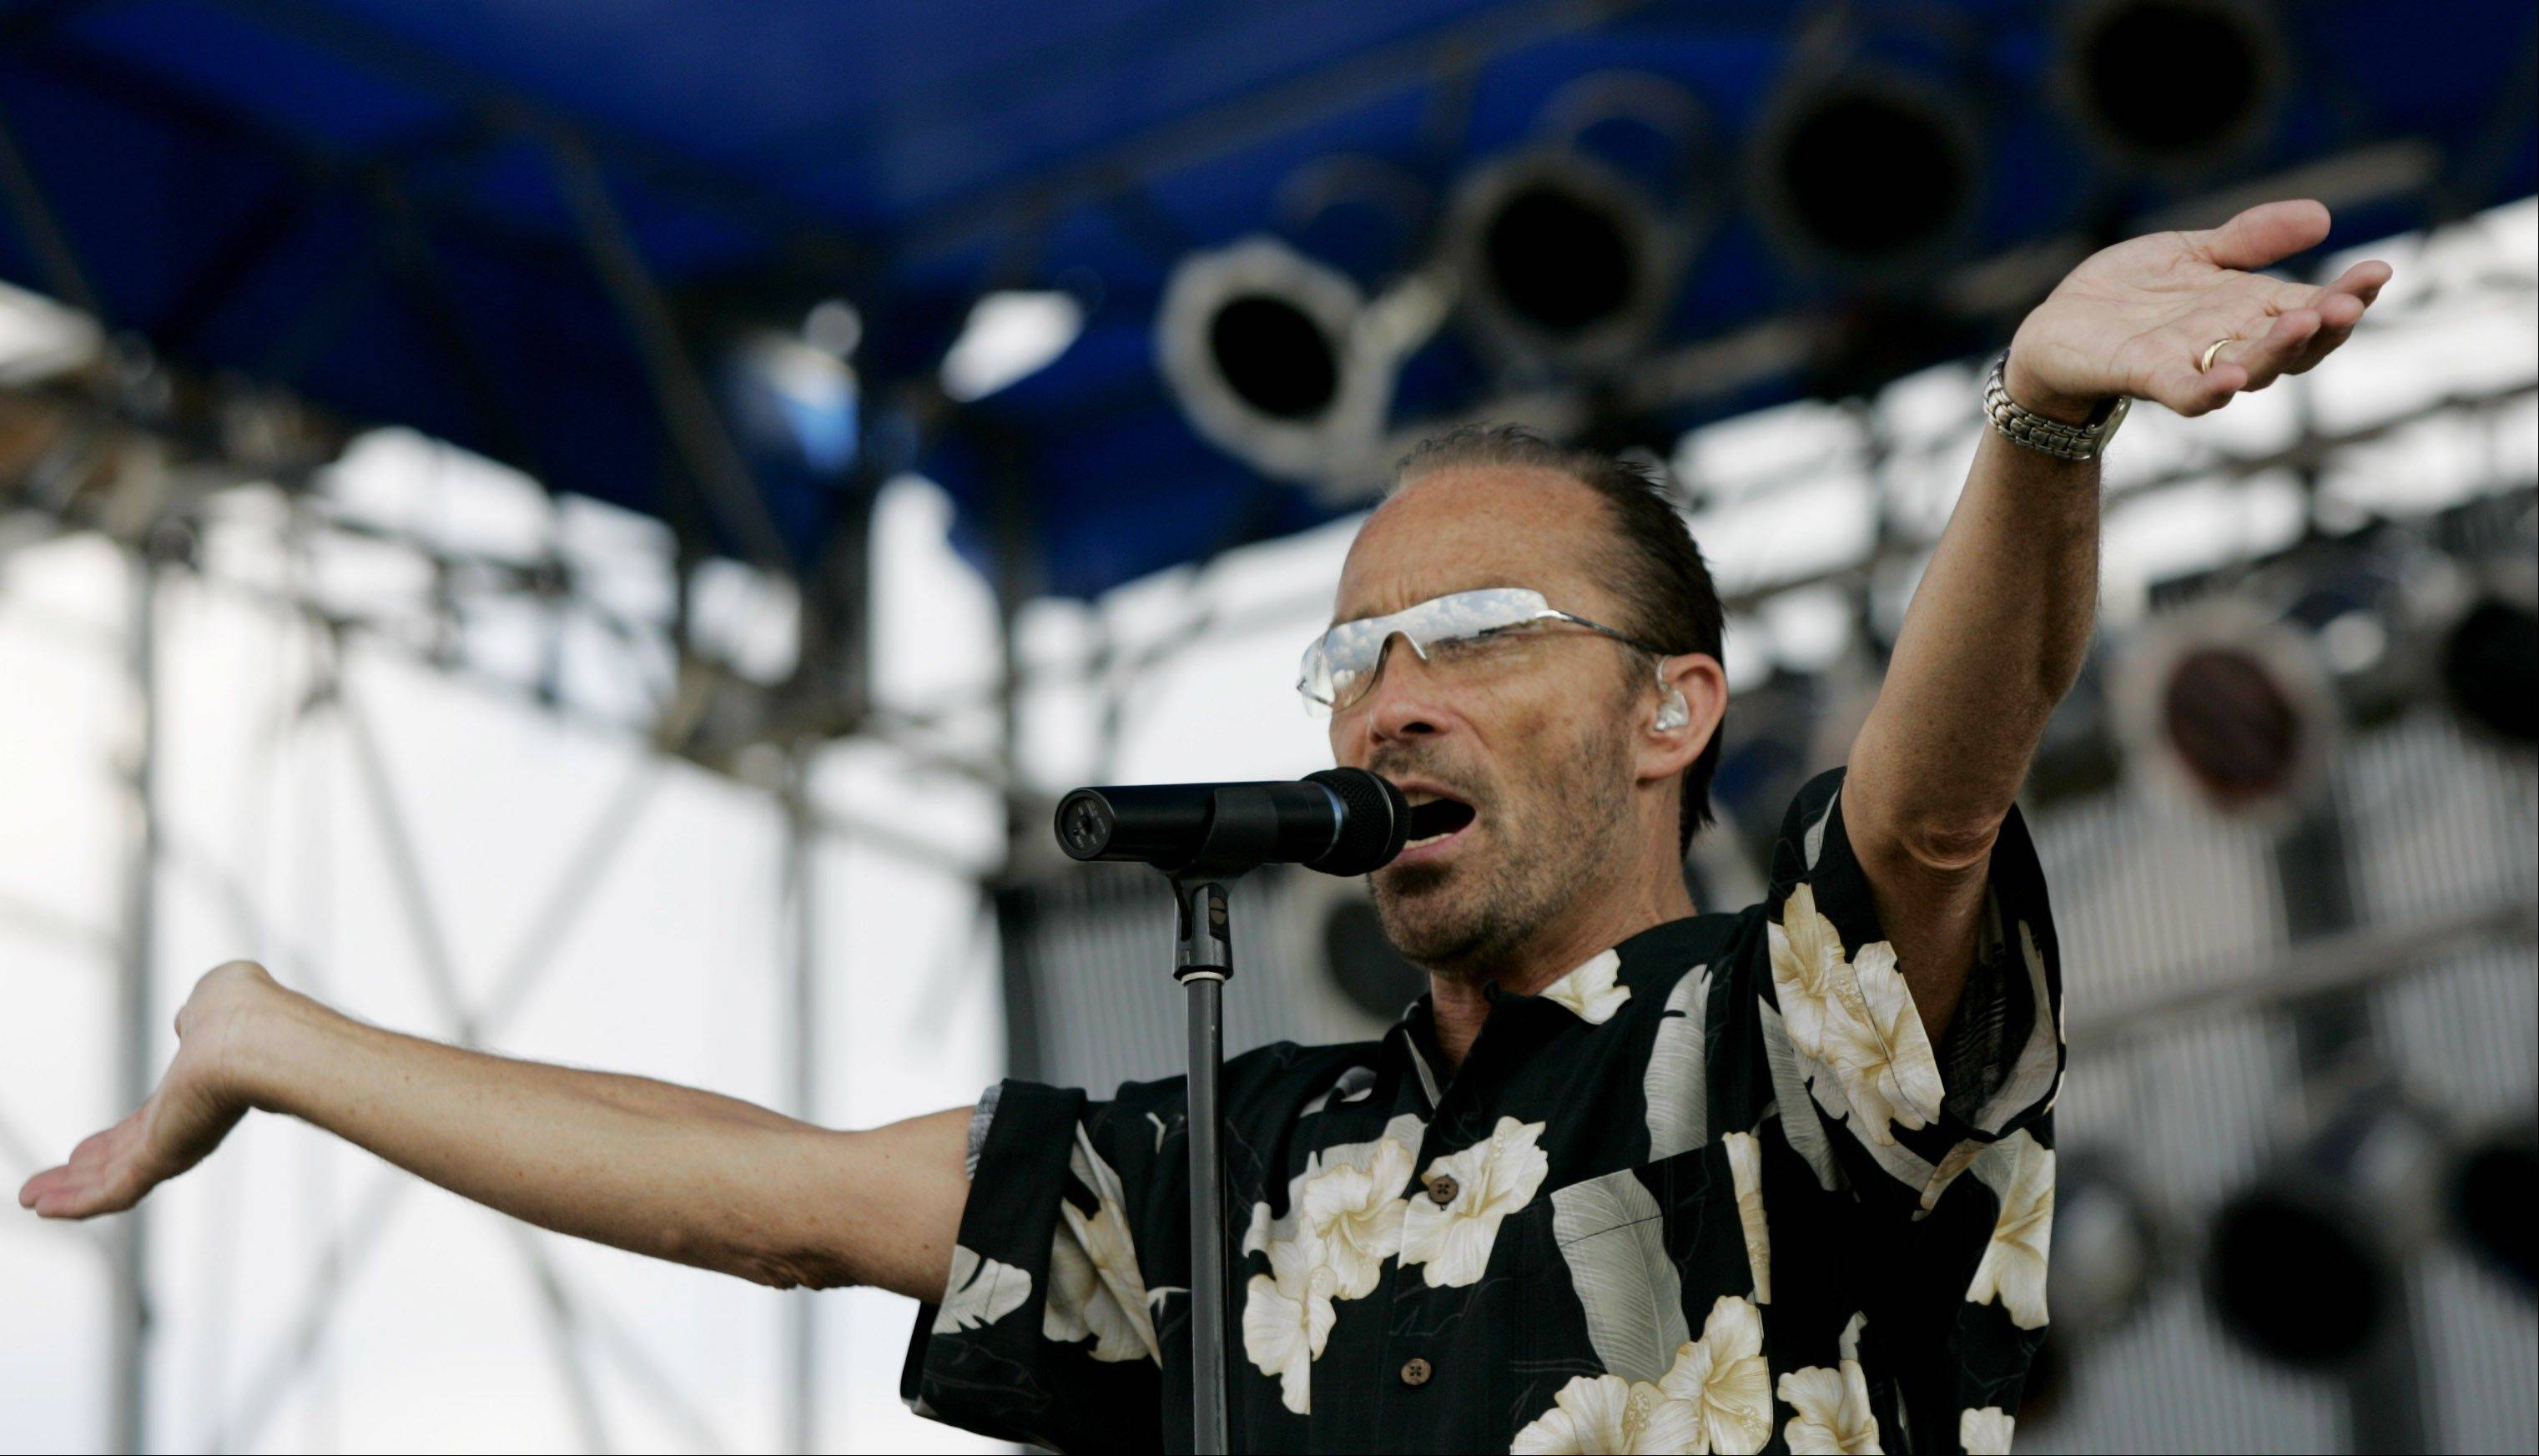 In 2004, Lee Greenwood performs at Ribfest in Naperville. He opens the main stage at Frontier Days on June 30.